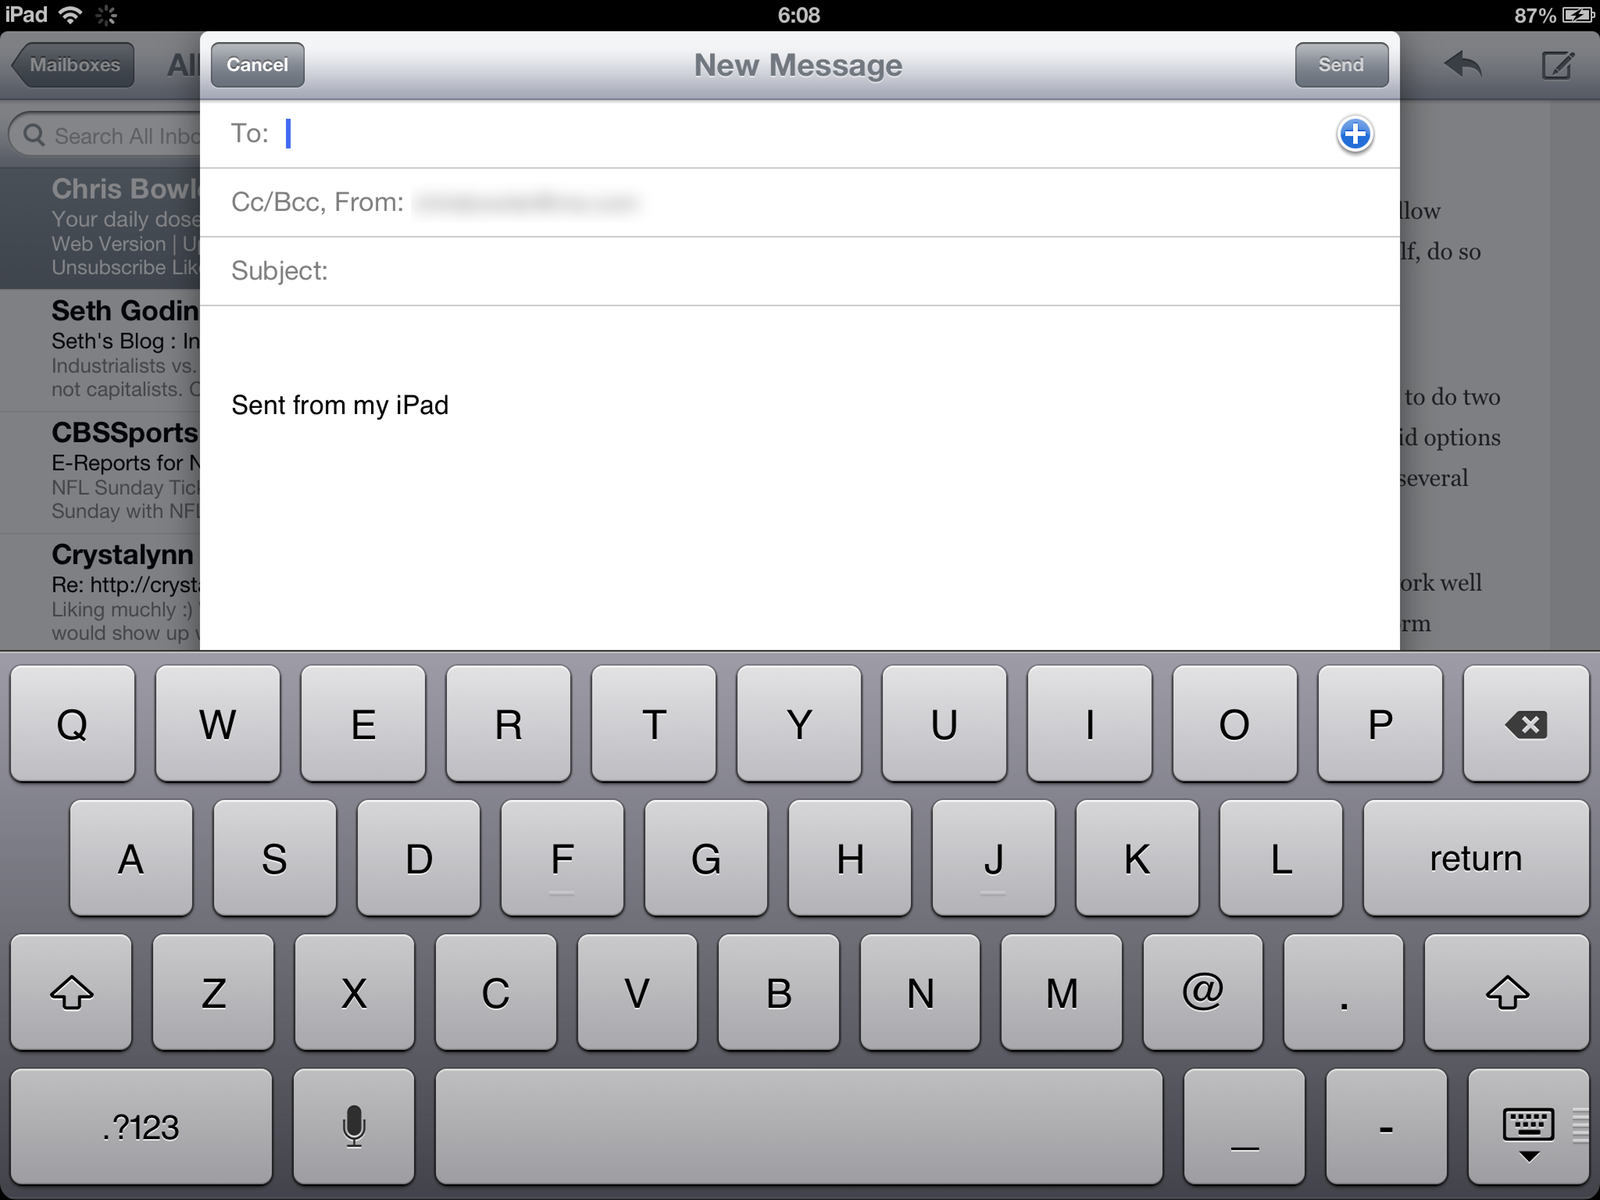 Mail app's keyboard layout